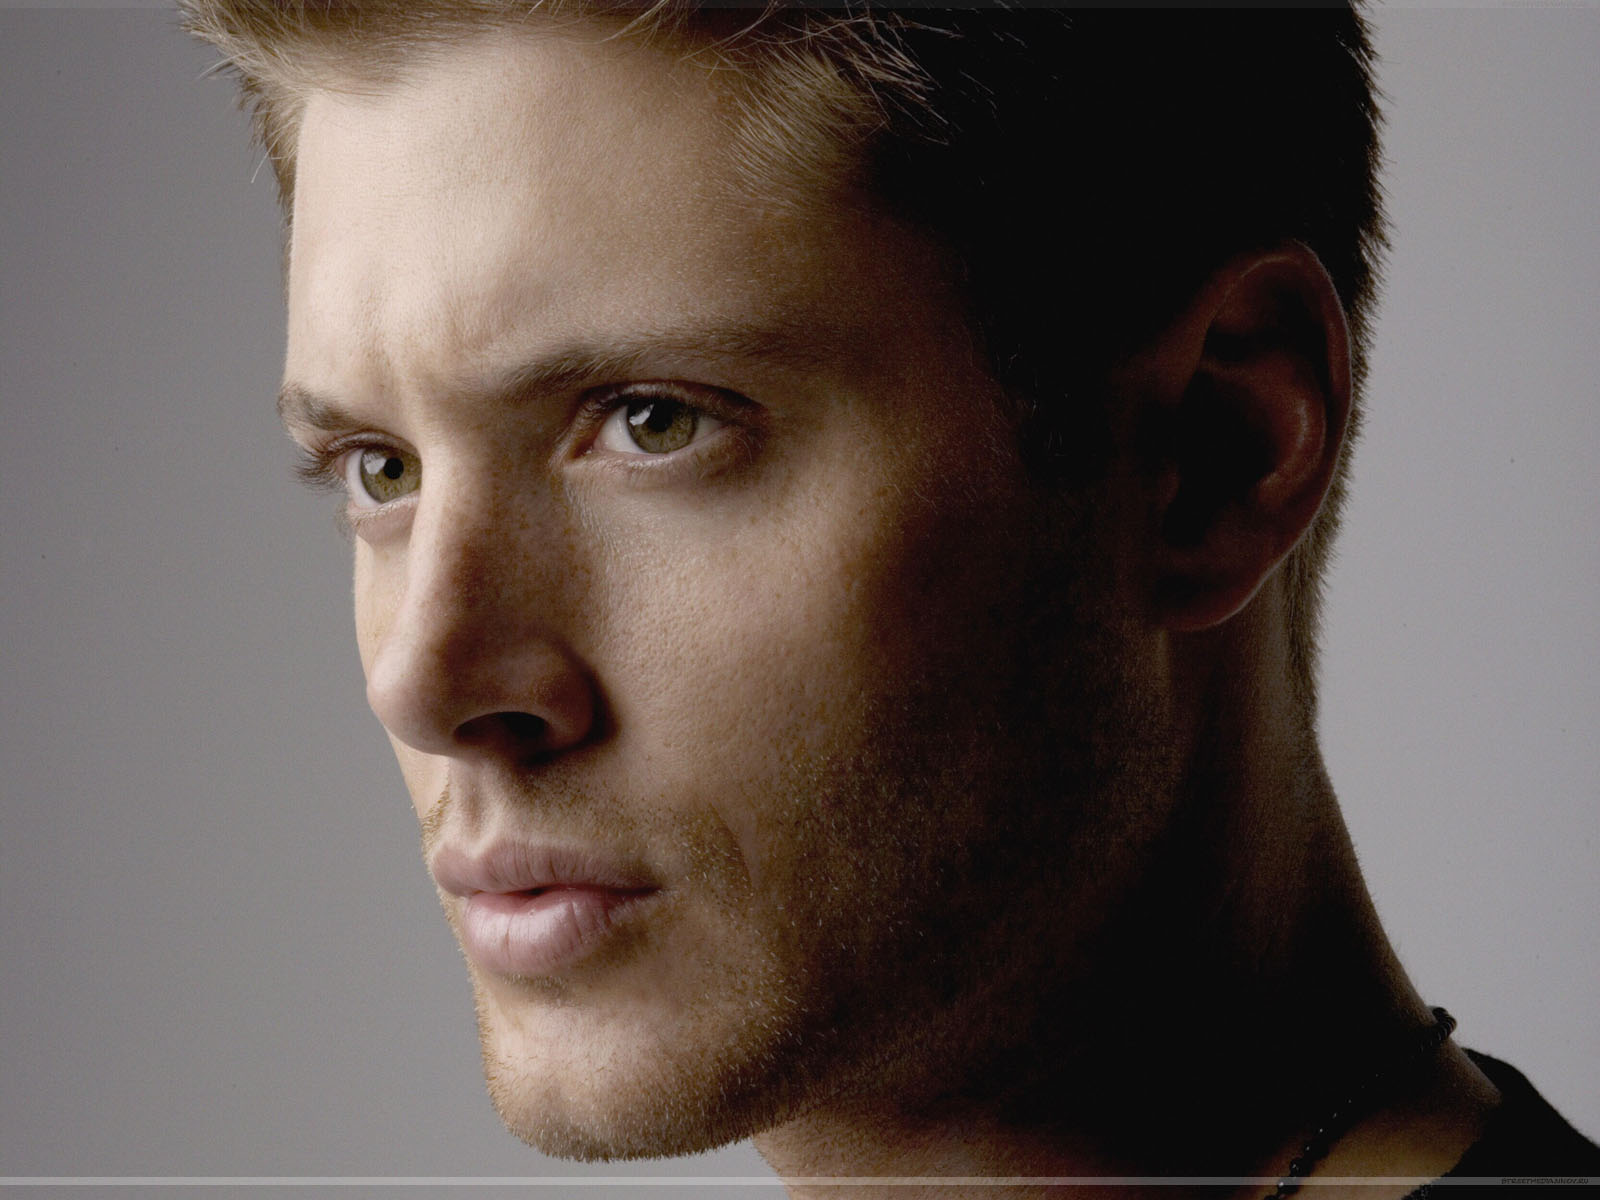 jensen ackles images jensen hd wallpaper and background